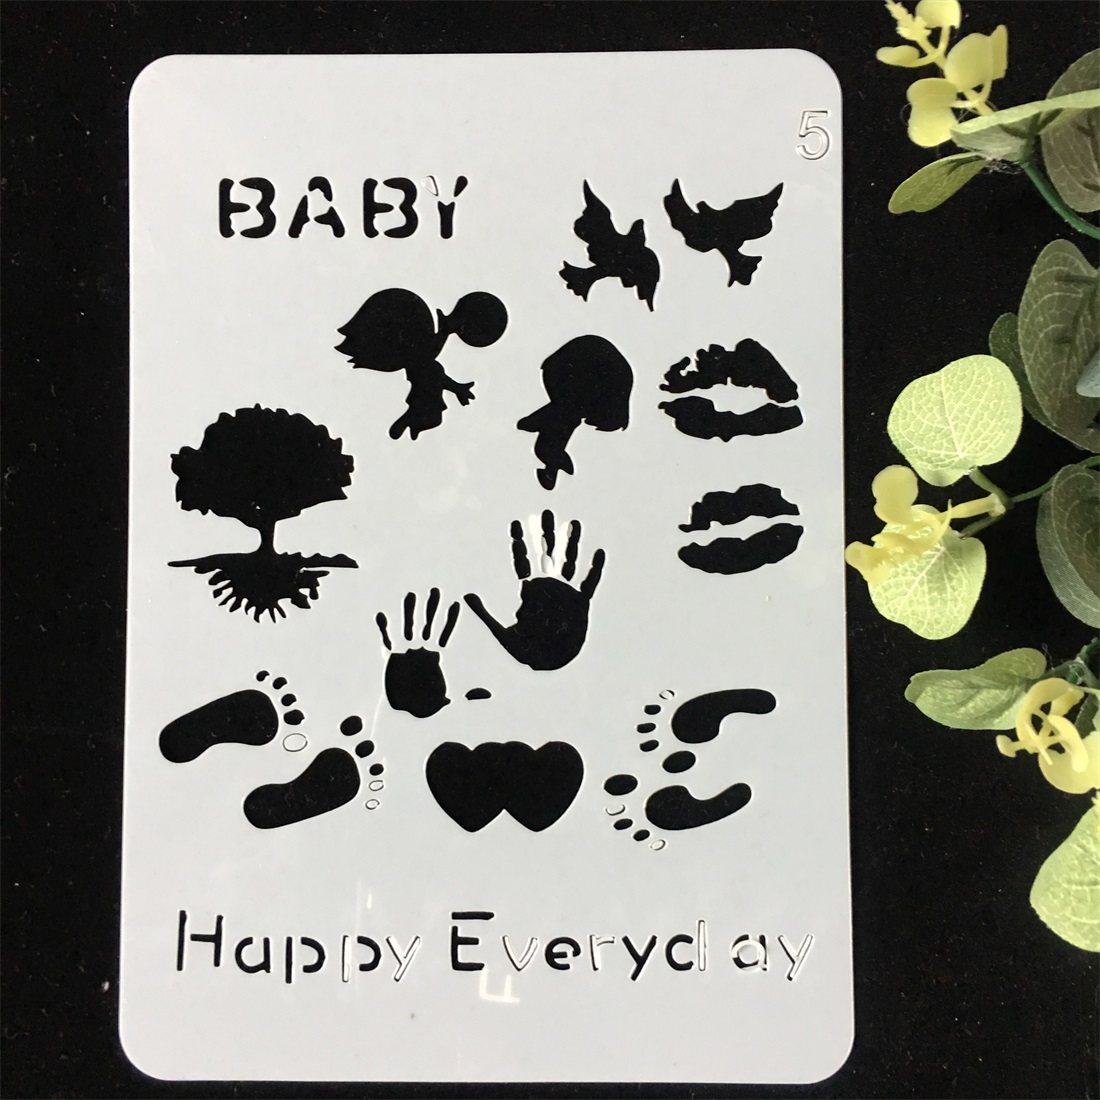 1Pcs 20x14cm Baby Hand Print DIY Layering Stencils Wall Painting Scrapbook Coloring Embossing Album Decorative Card Template